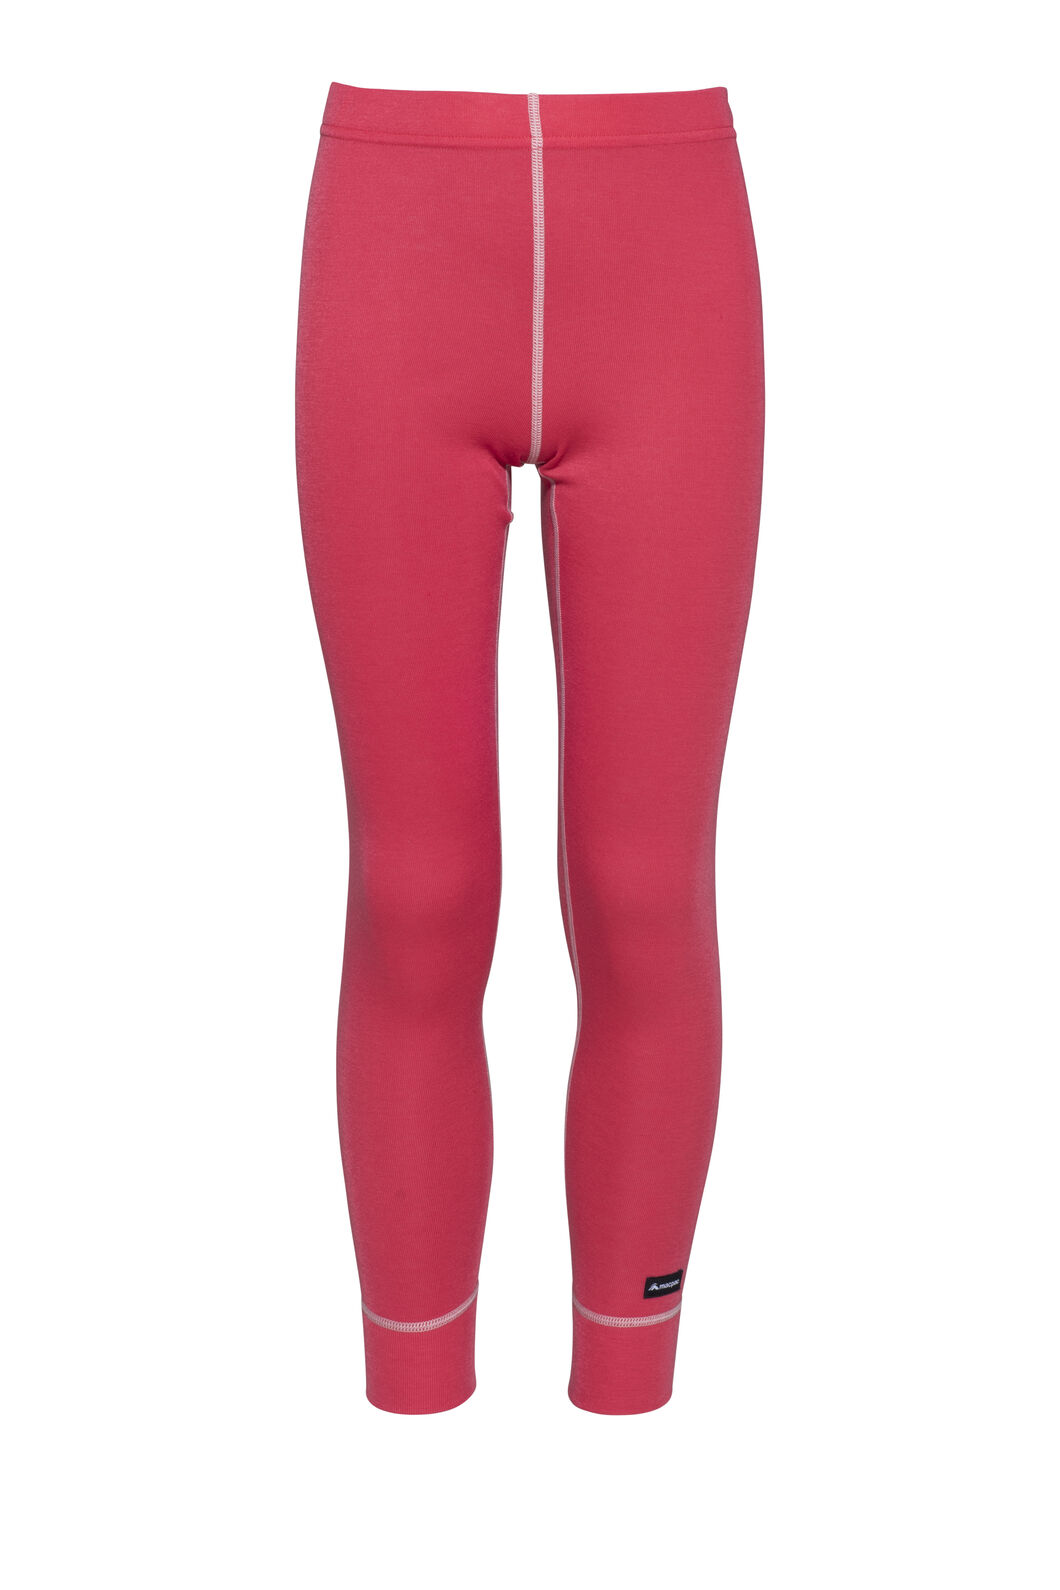 Macpac Geothermal Pants — Kids', Rouge Red, hi-res